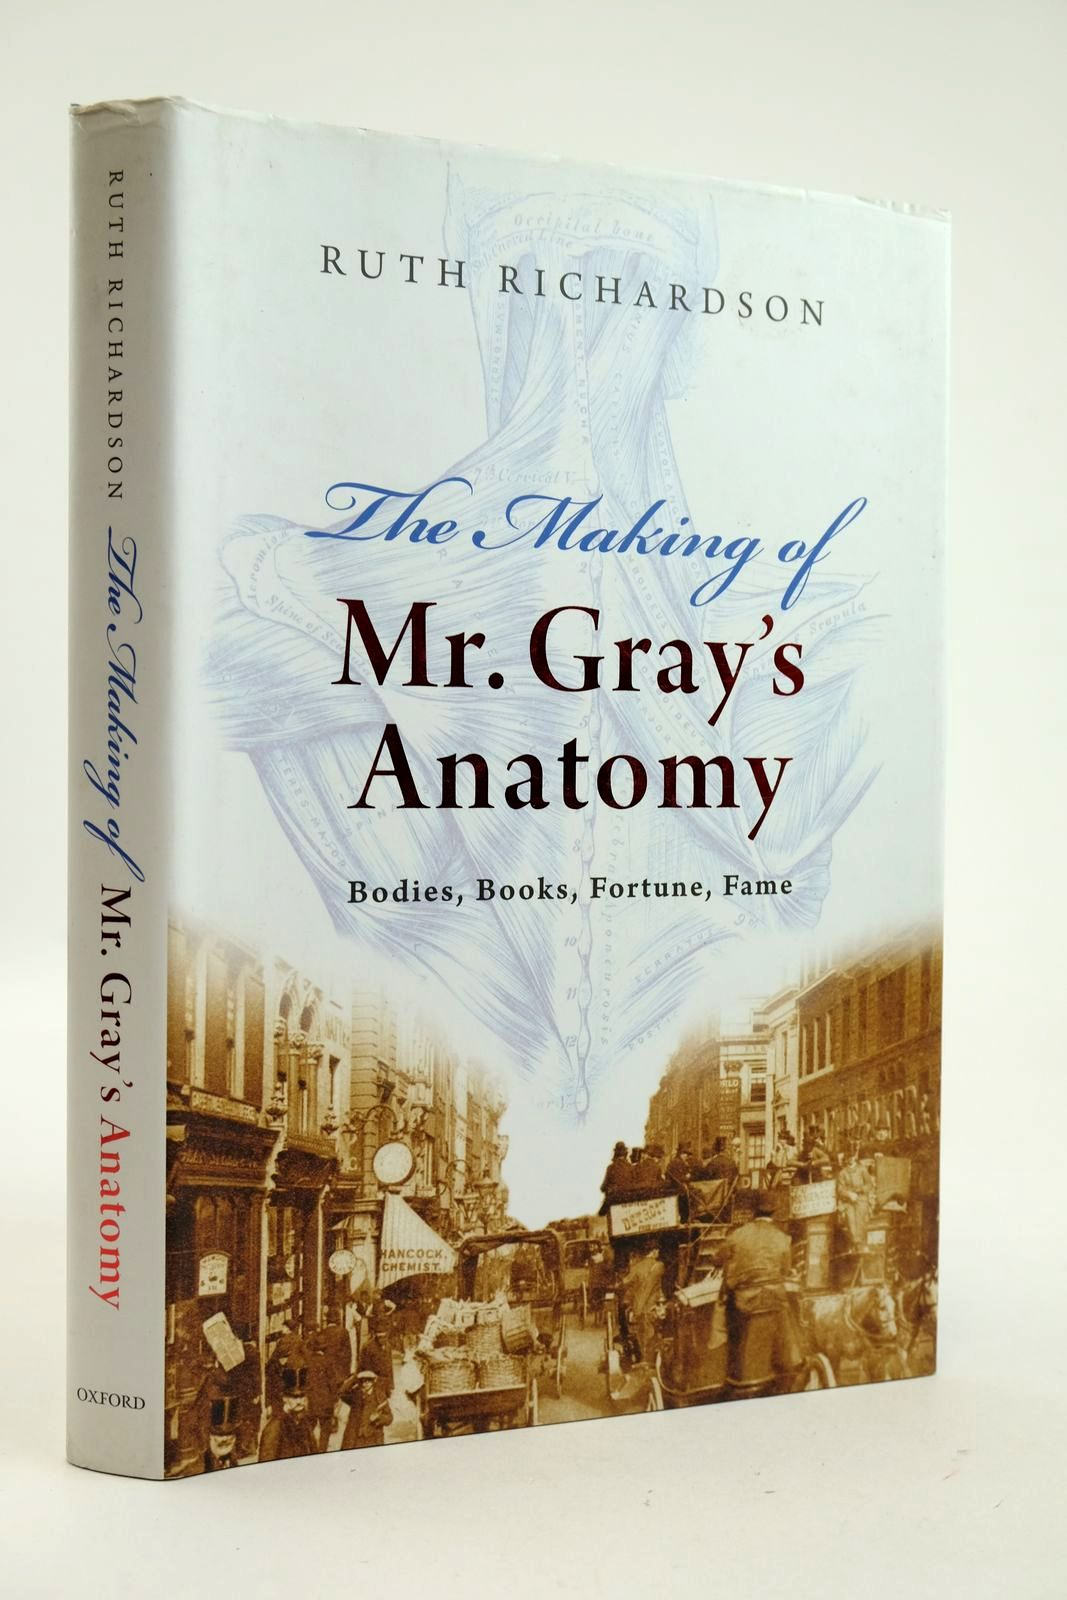 Photo of THE MAKING OF MR. GRAY'S ANATOMY- Stock Number: 2132946